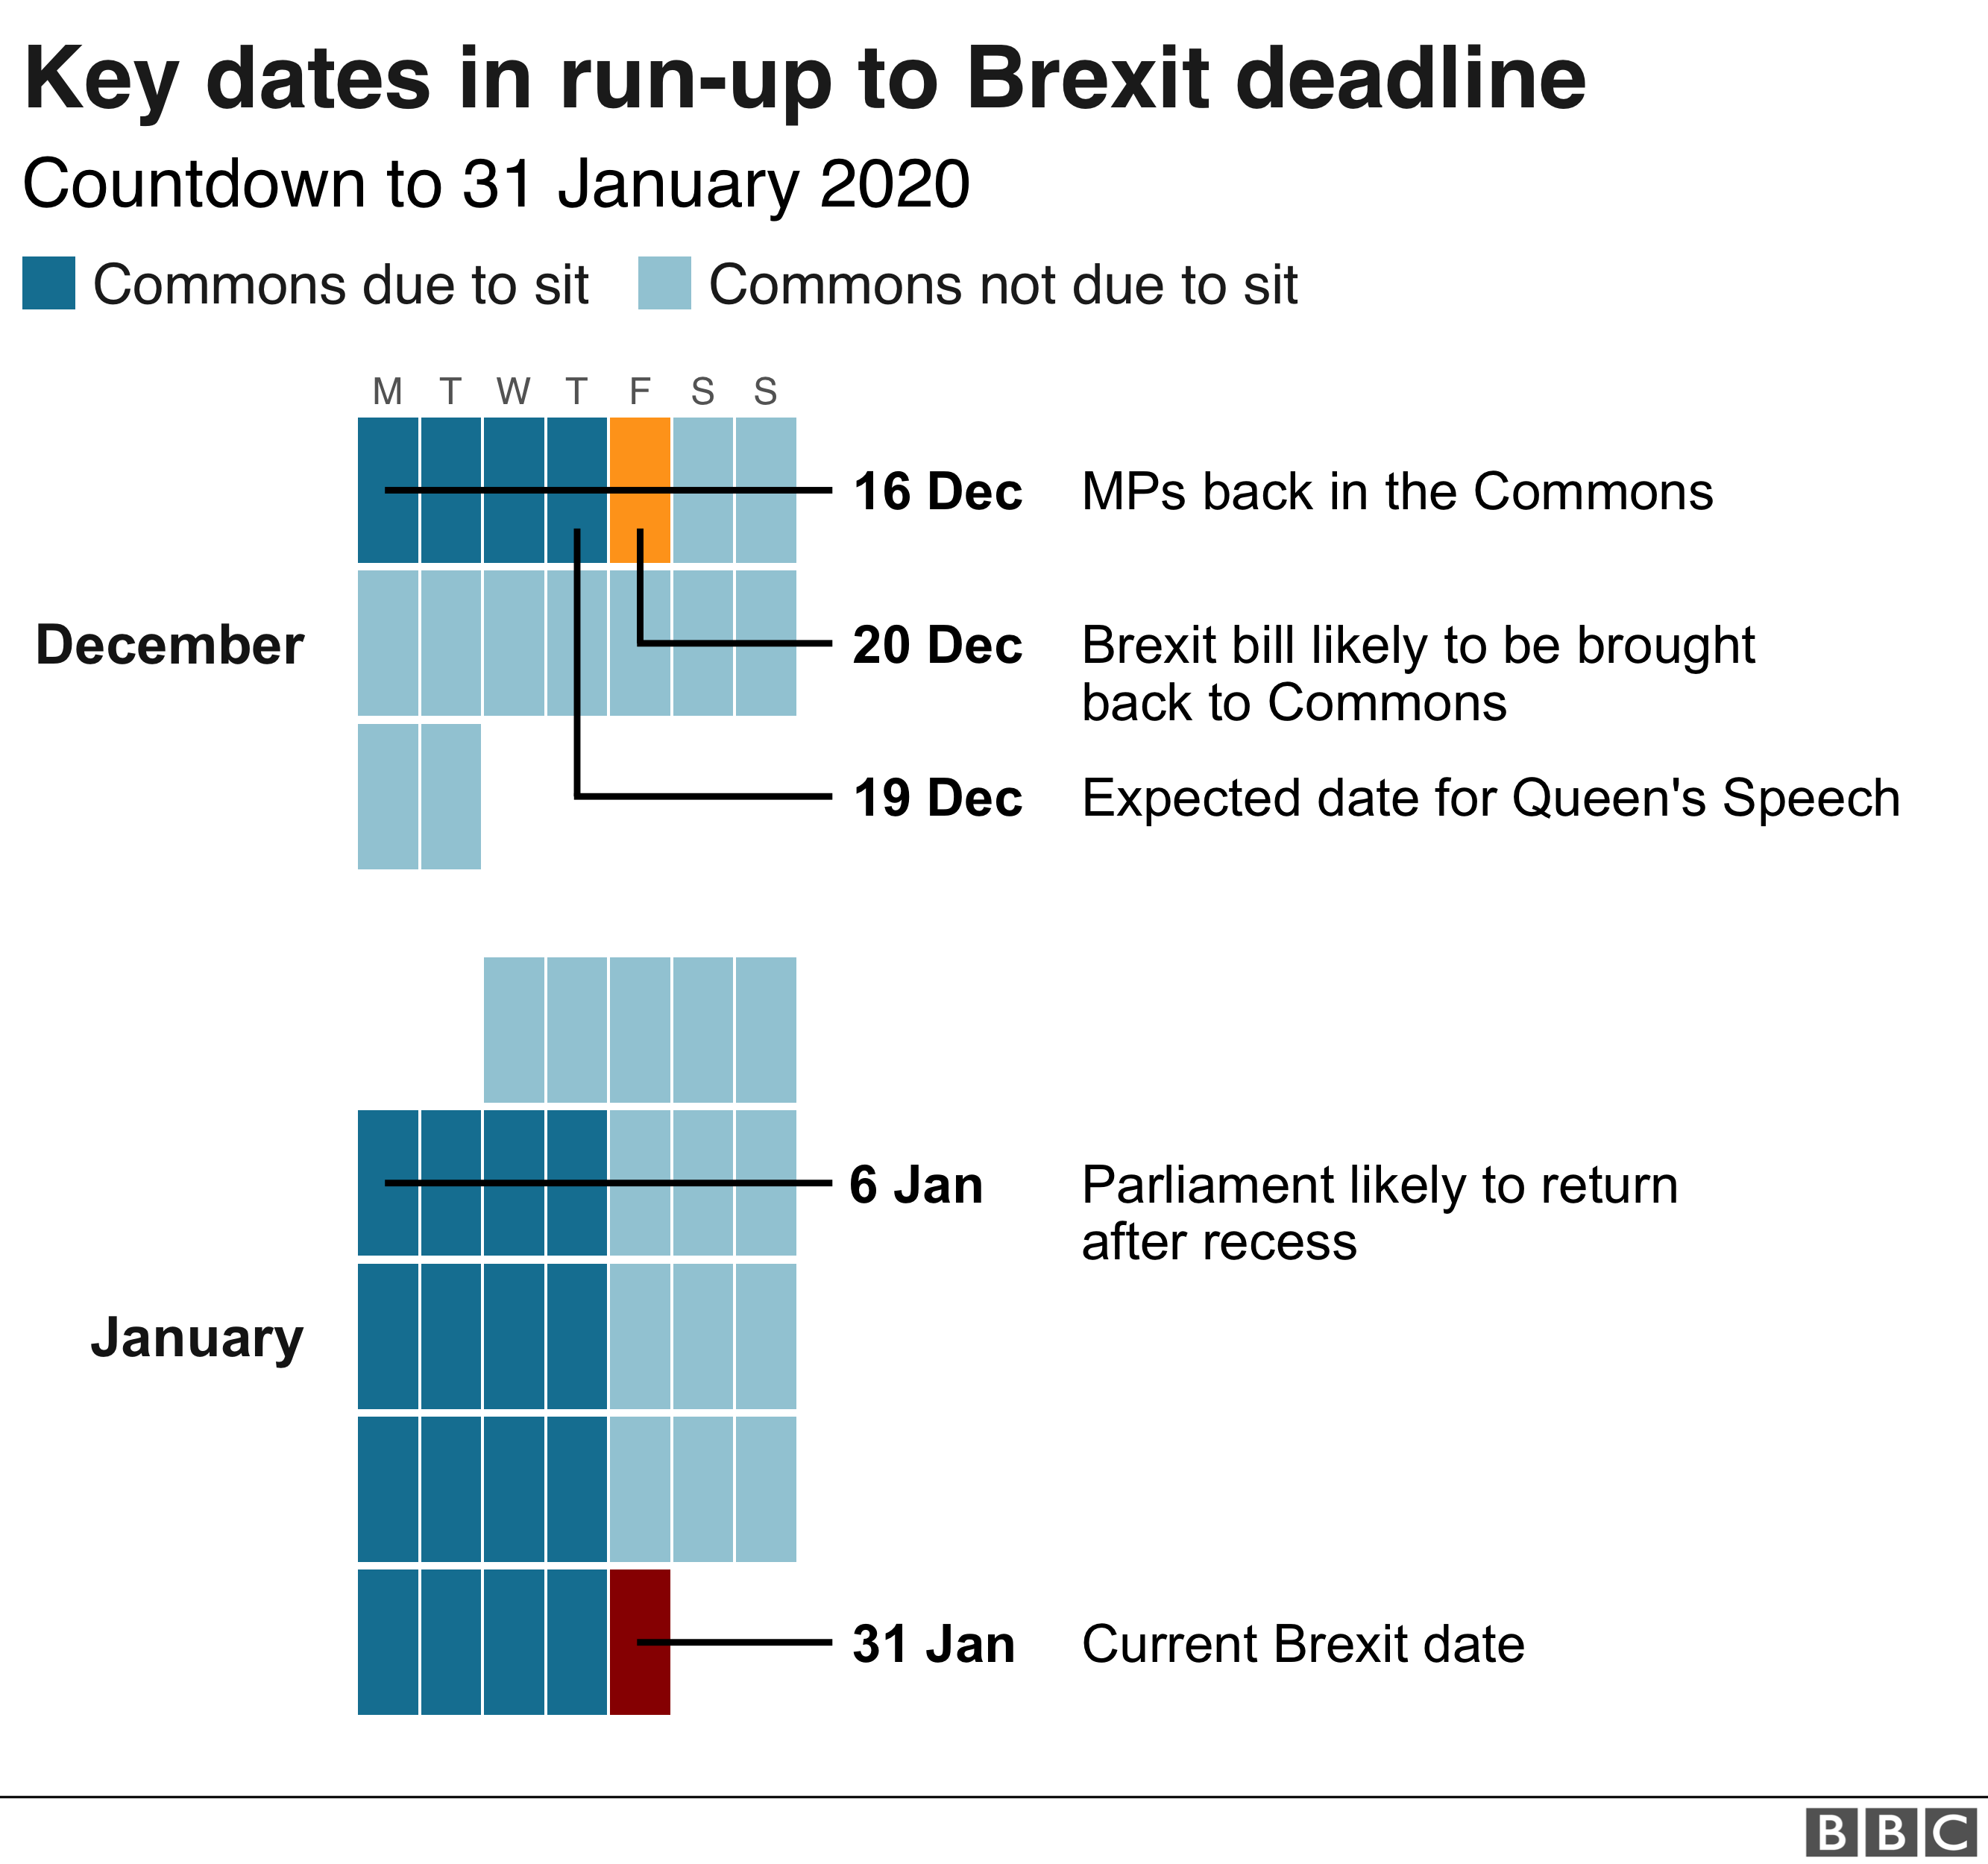 BBC Brexit calender